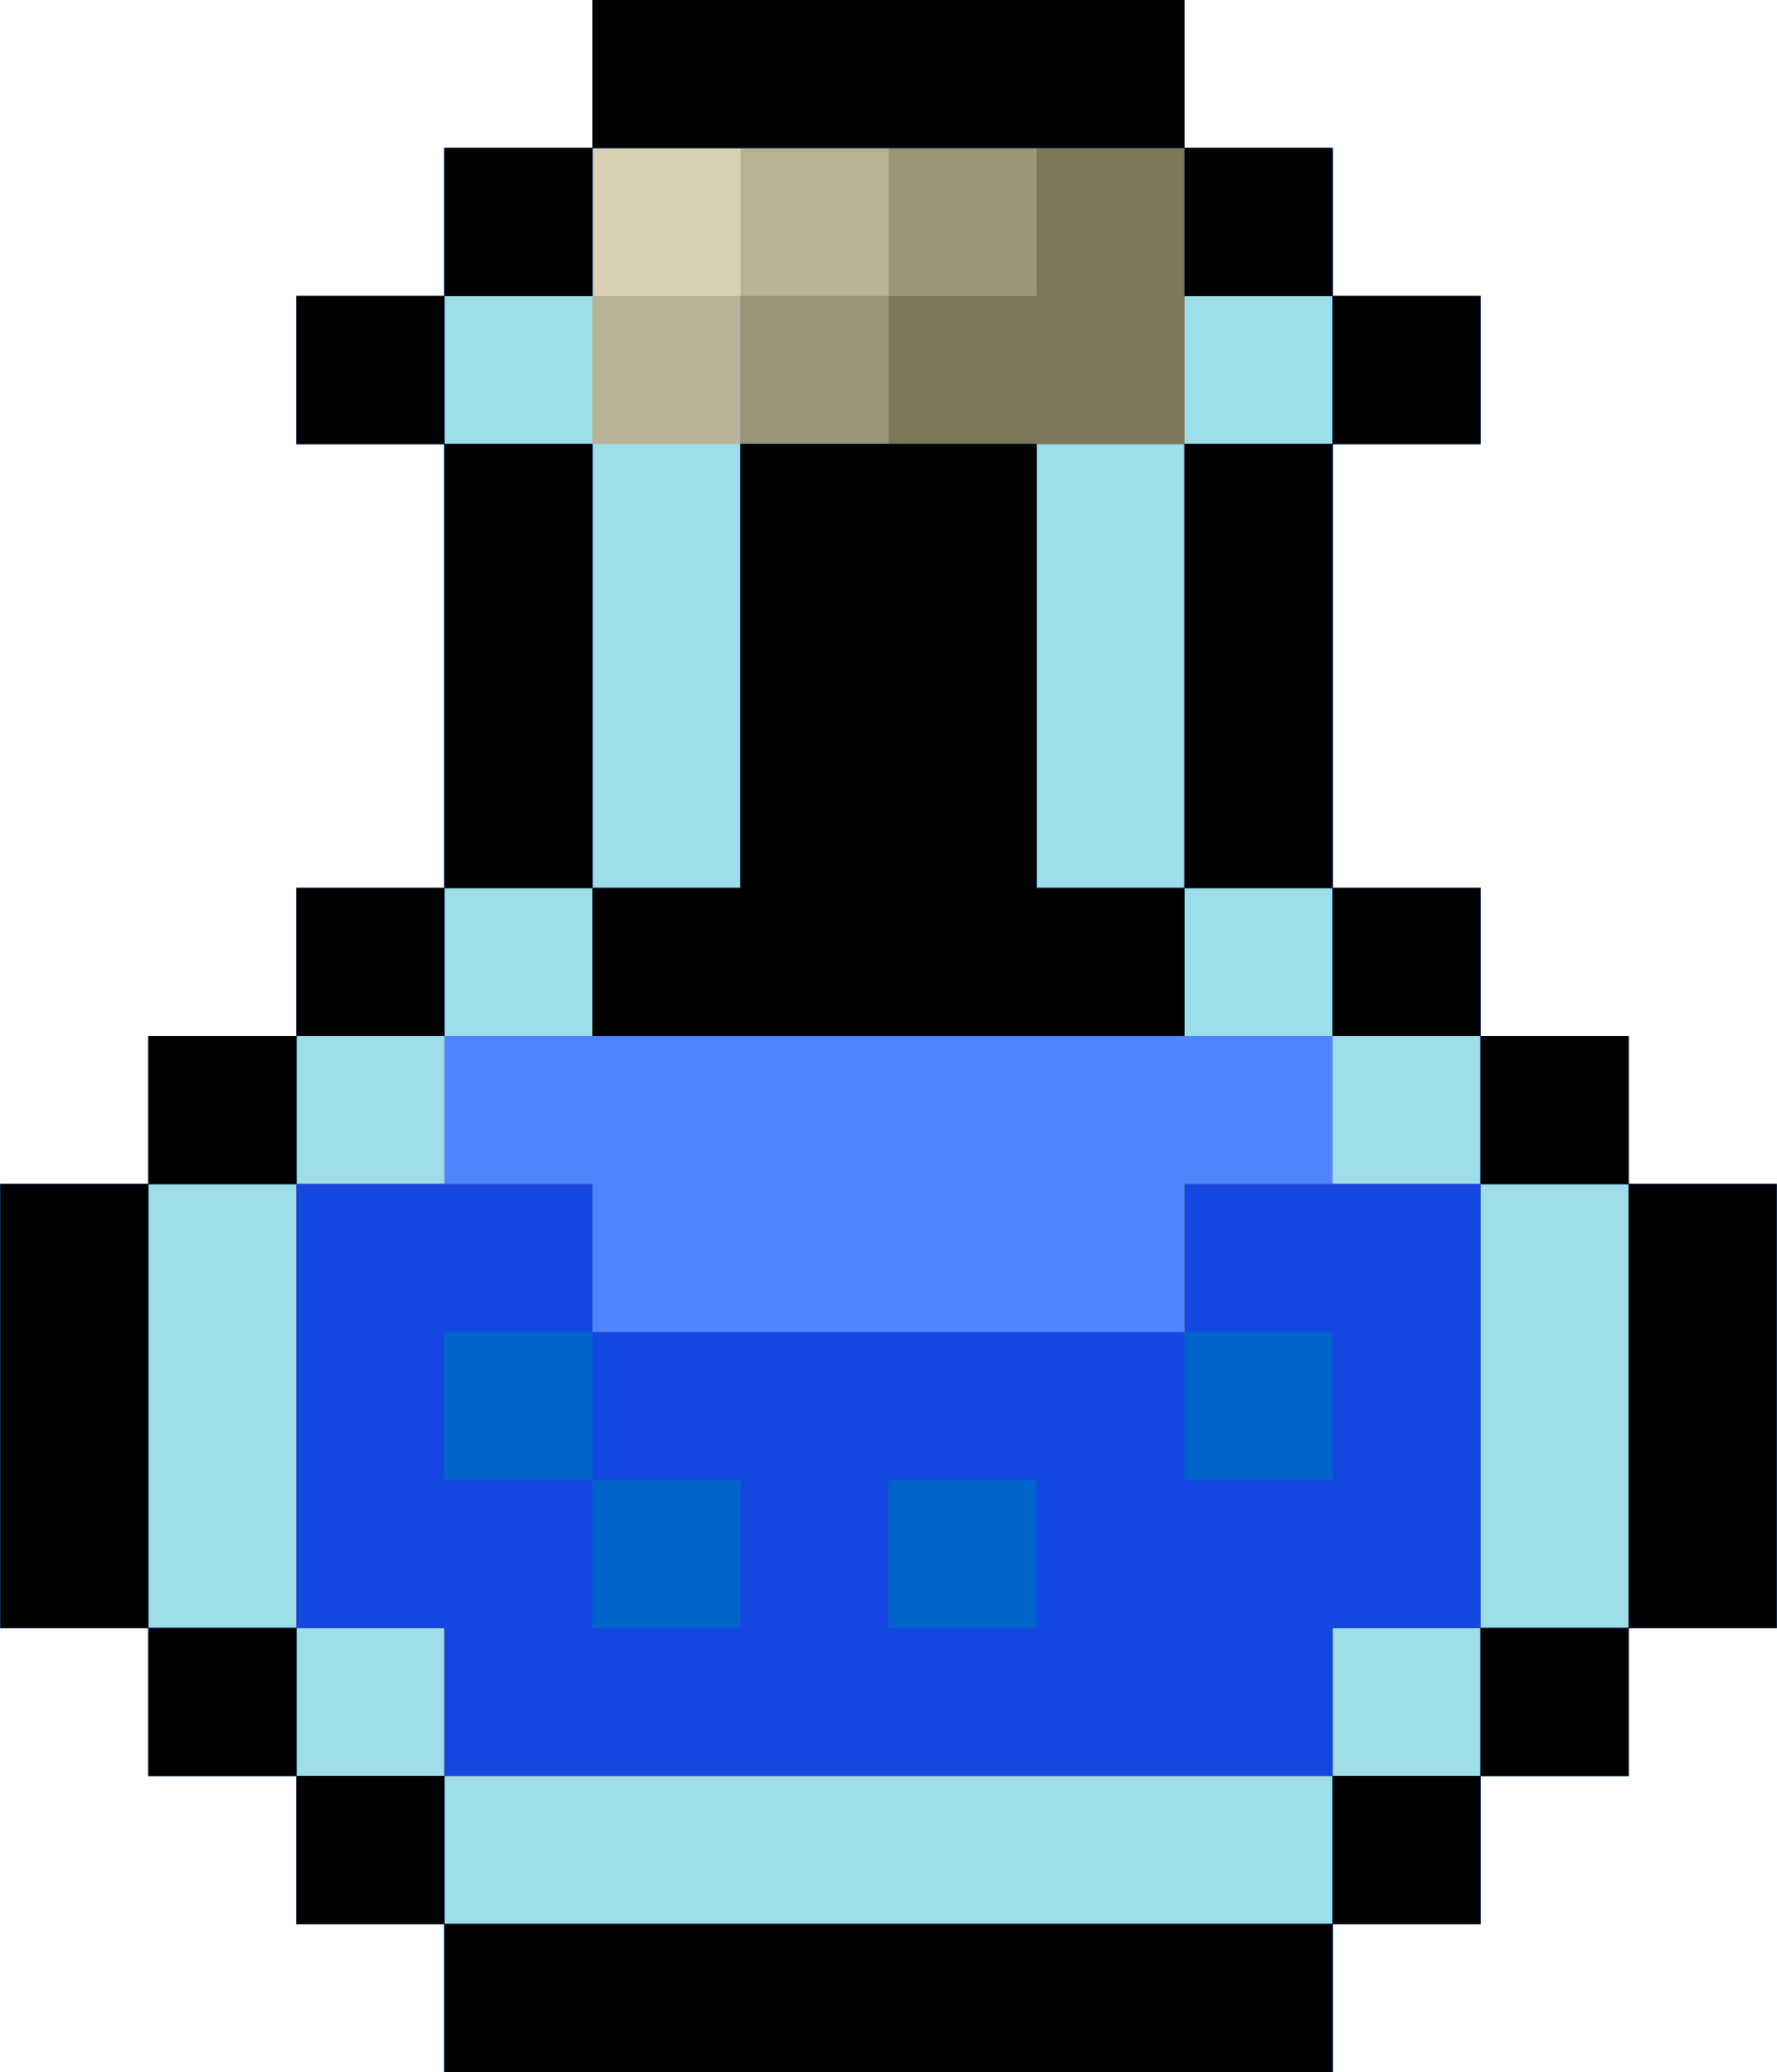 Potion bottle icon png. Pixel blue icons free